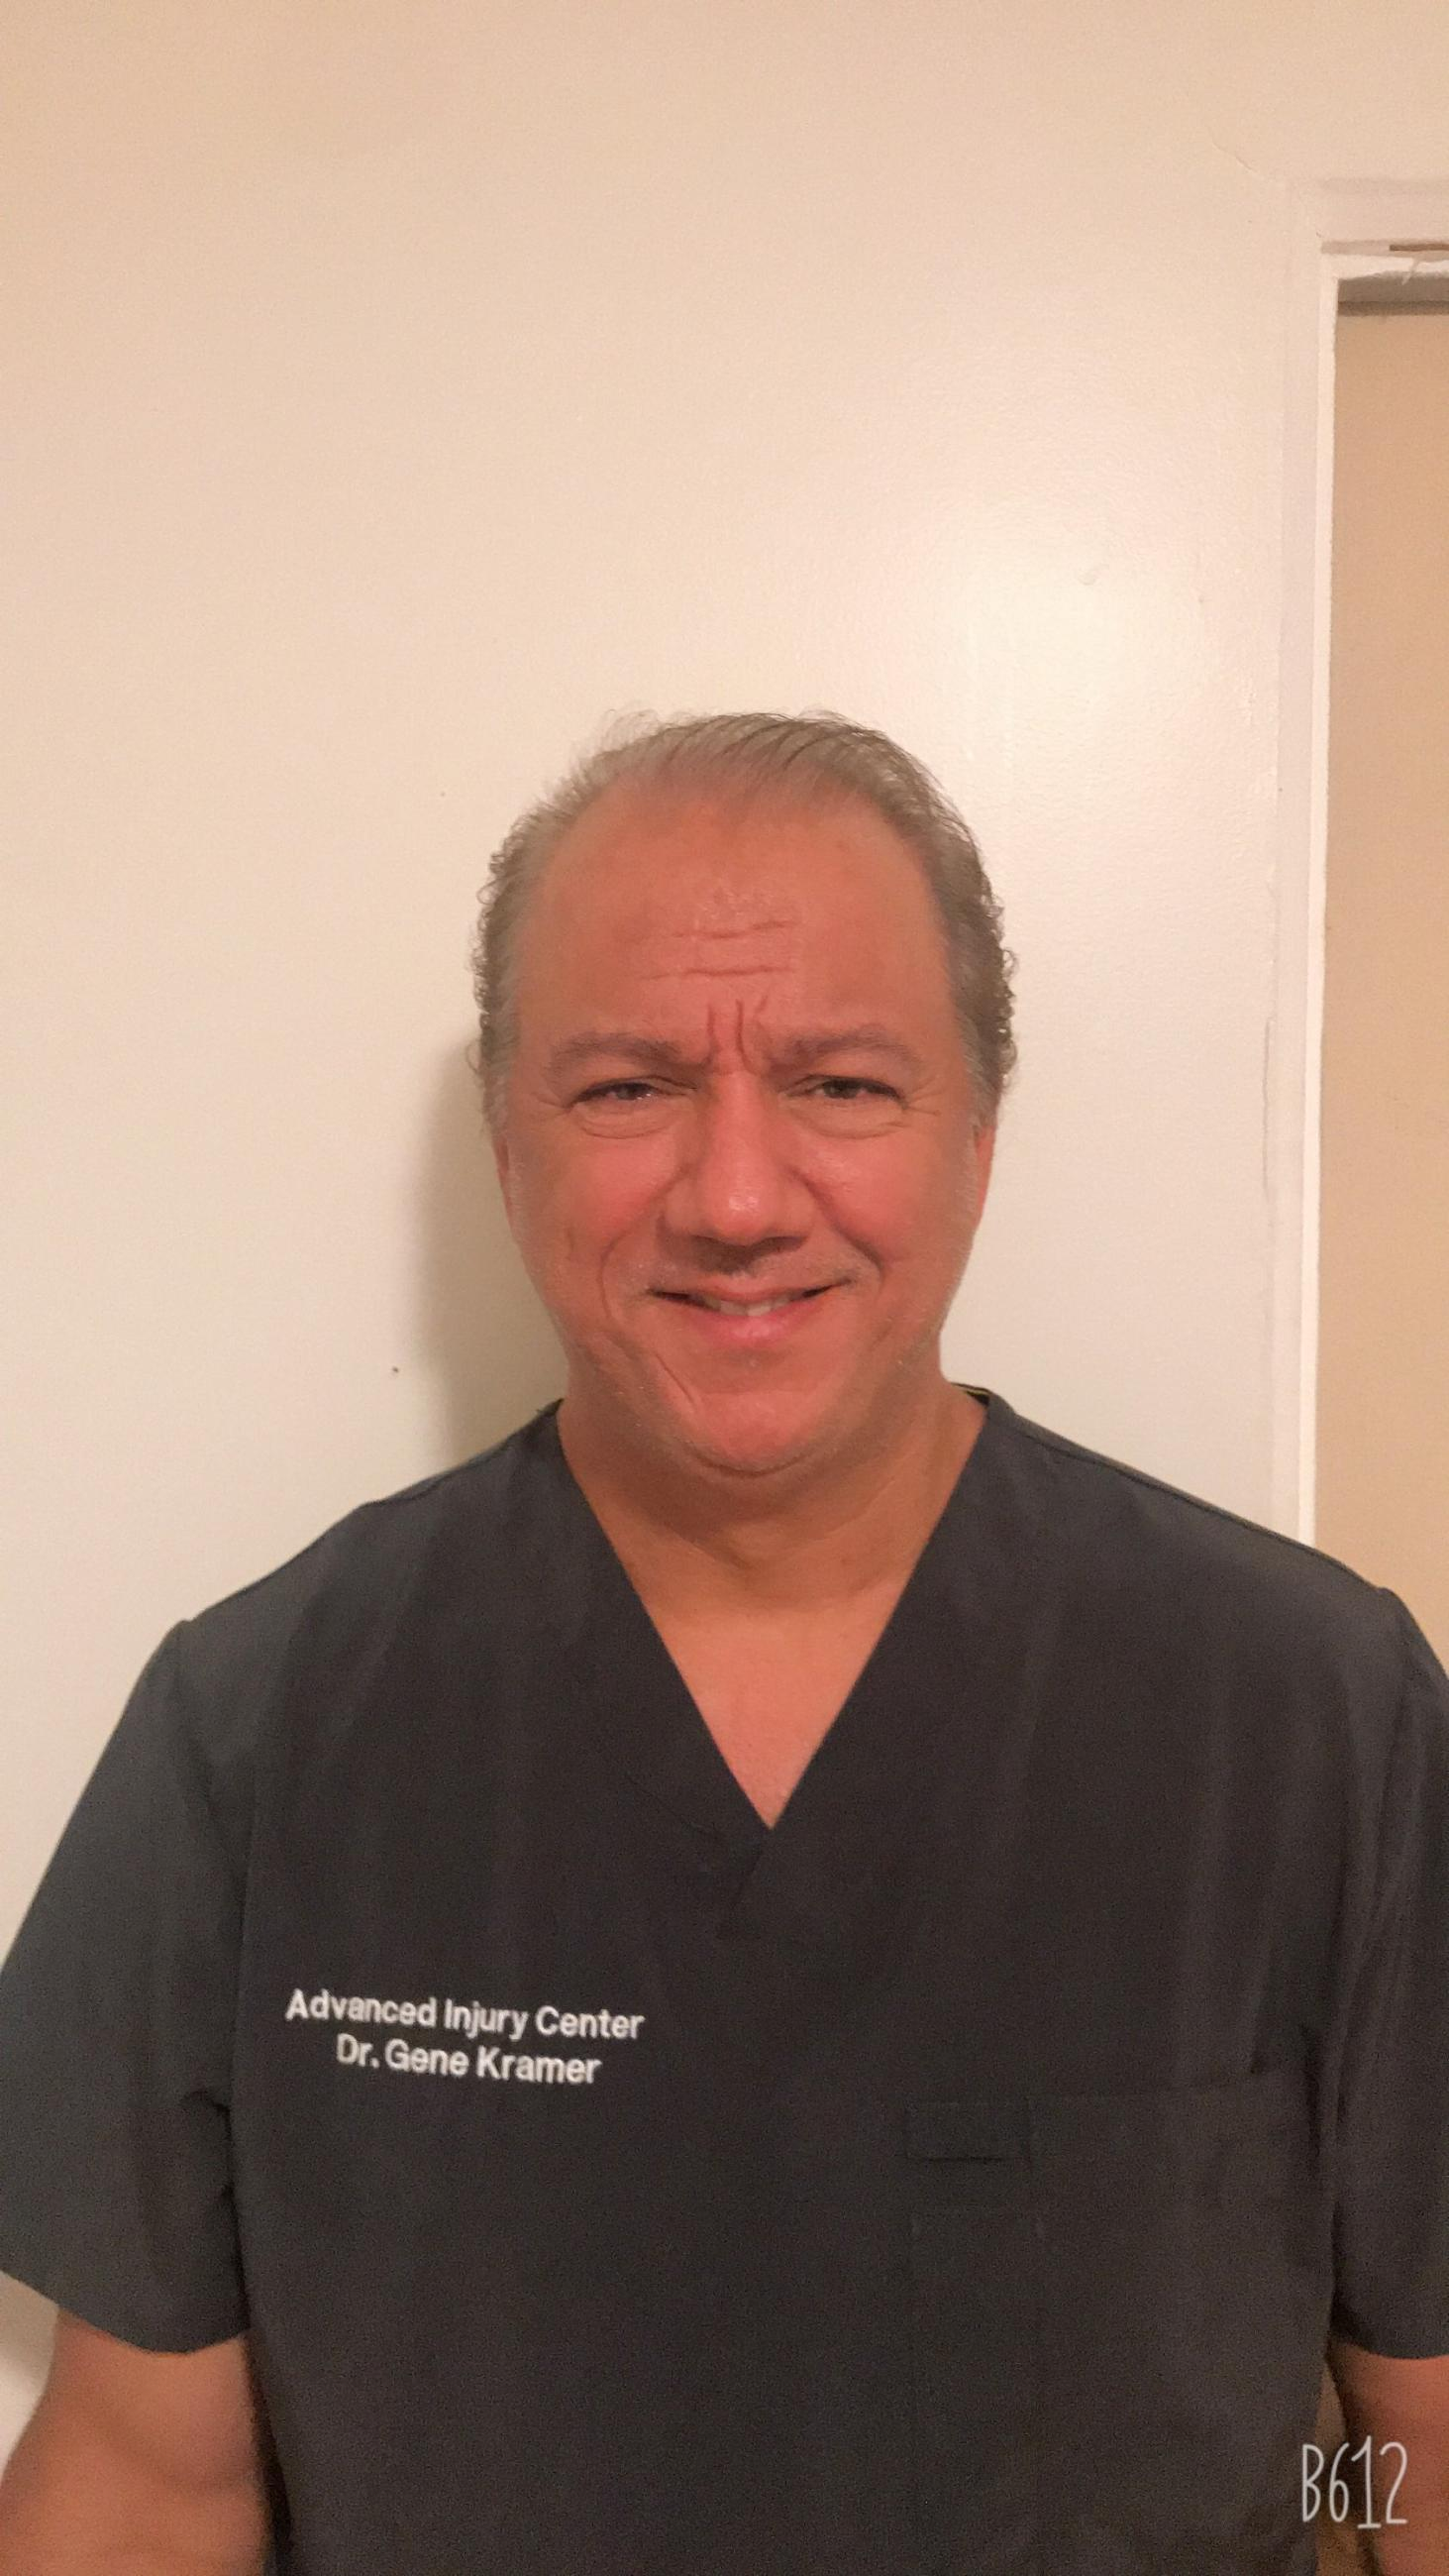 Chiropractor Dr Eugene Kramer Provides a Scholarship to Help Future Doctors of America